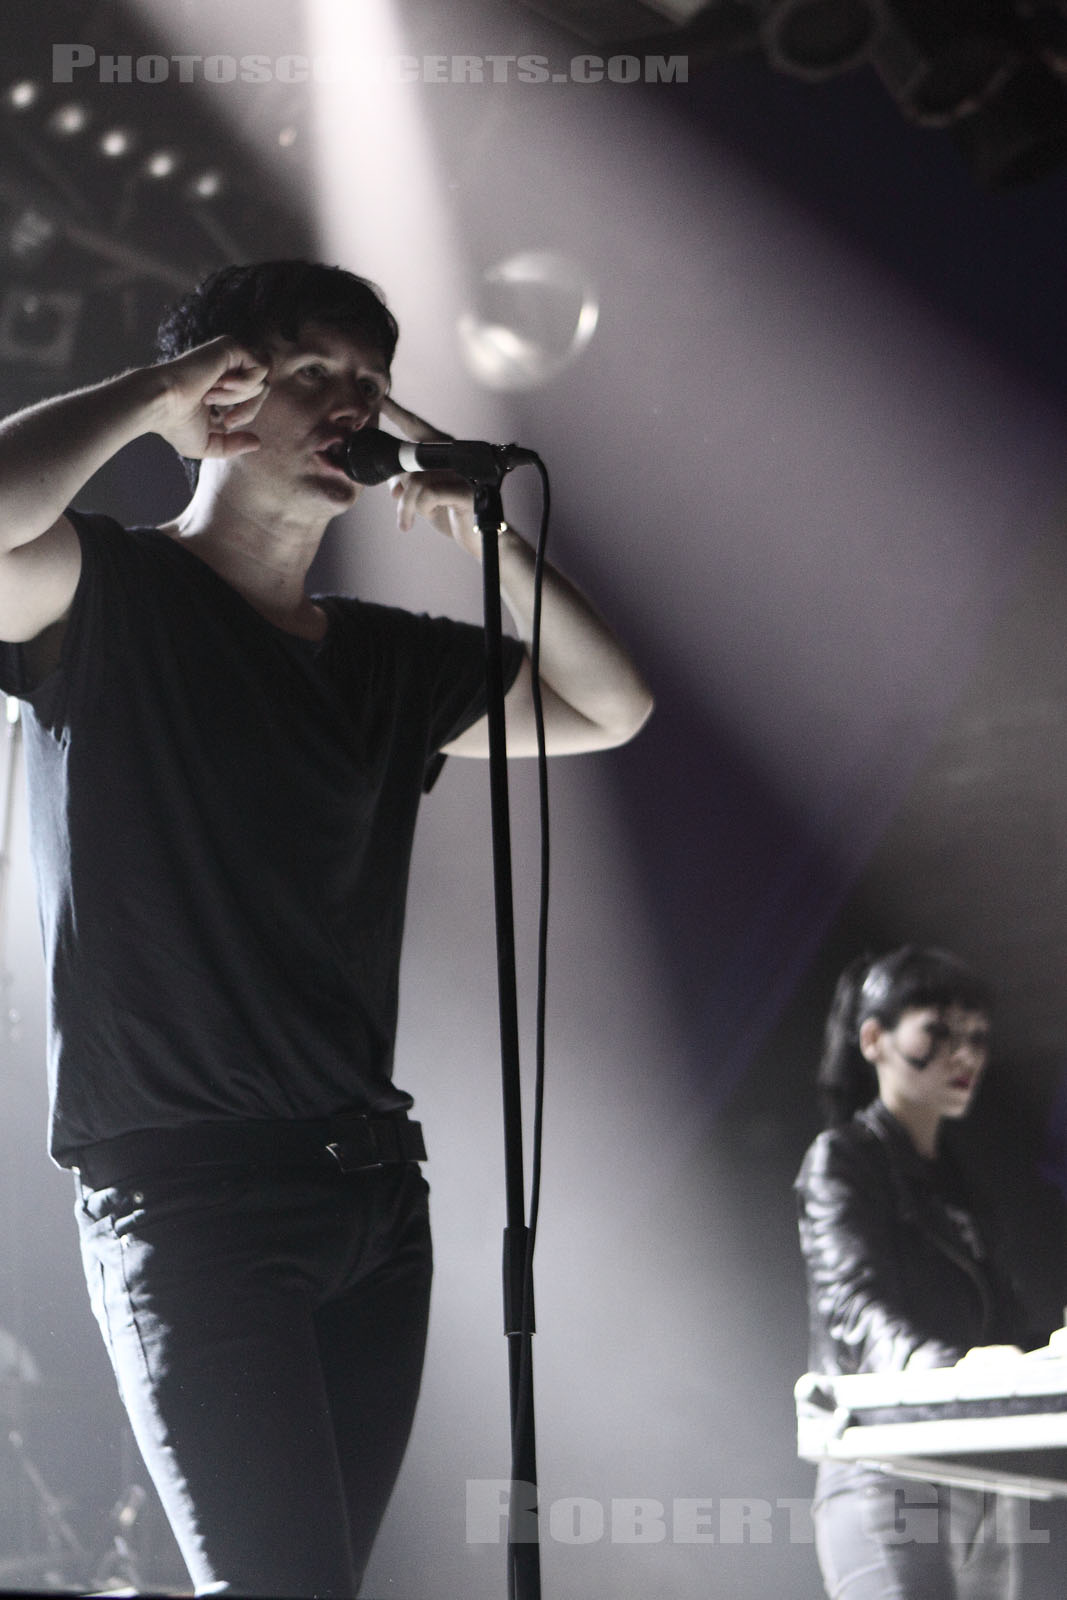 ALEC EMPIRE - 2010-09-06 - PARIS - La Machine (du Moulin Rouge)